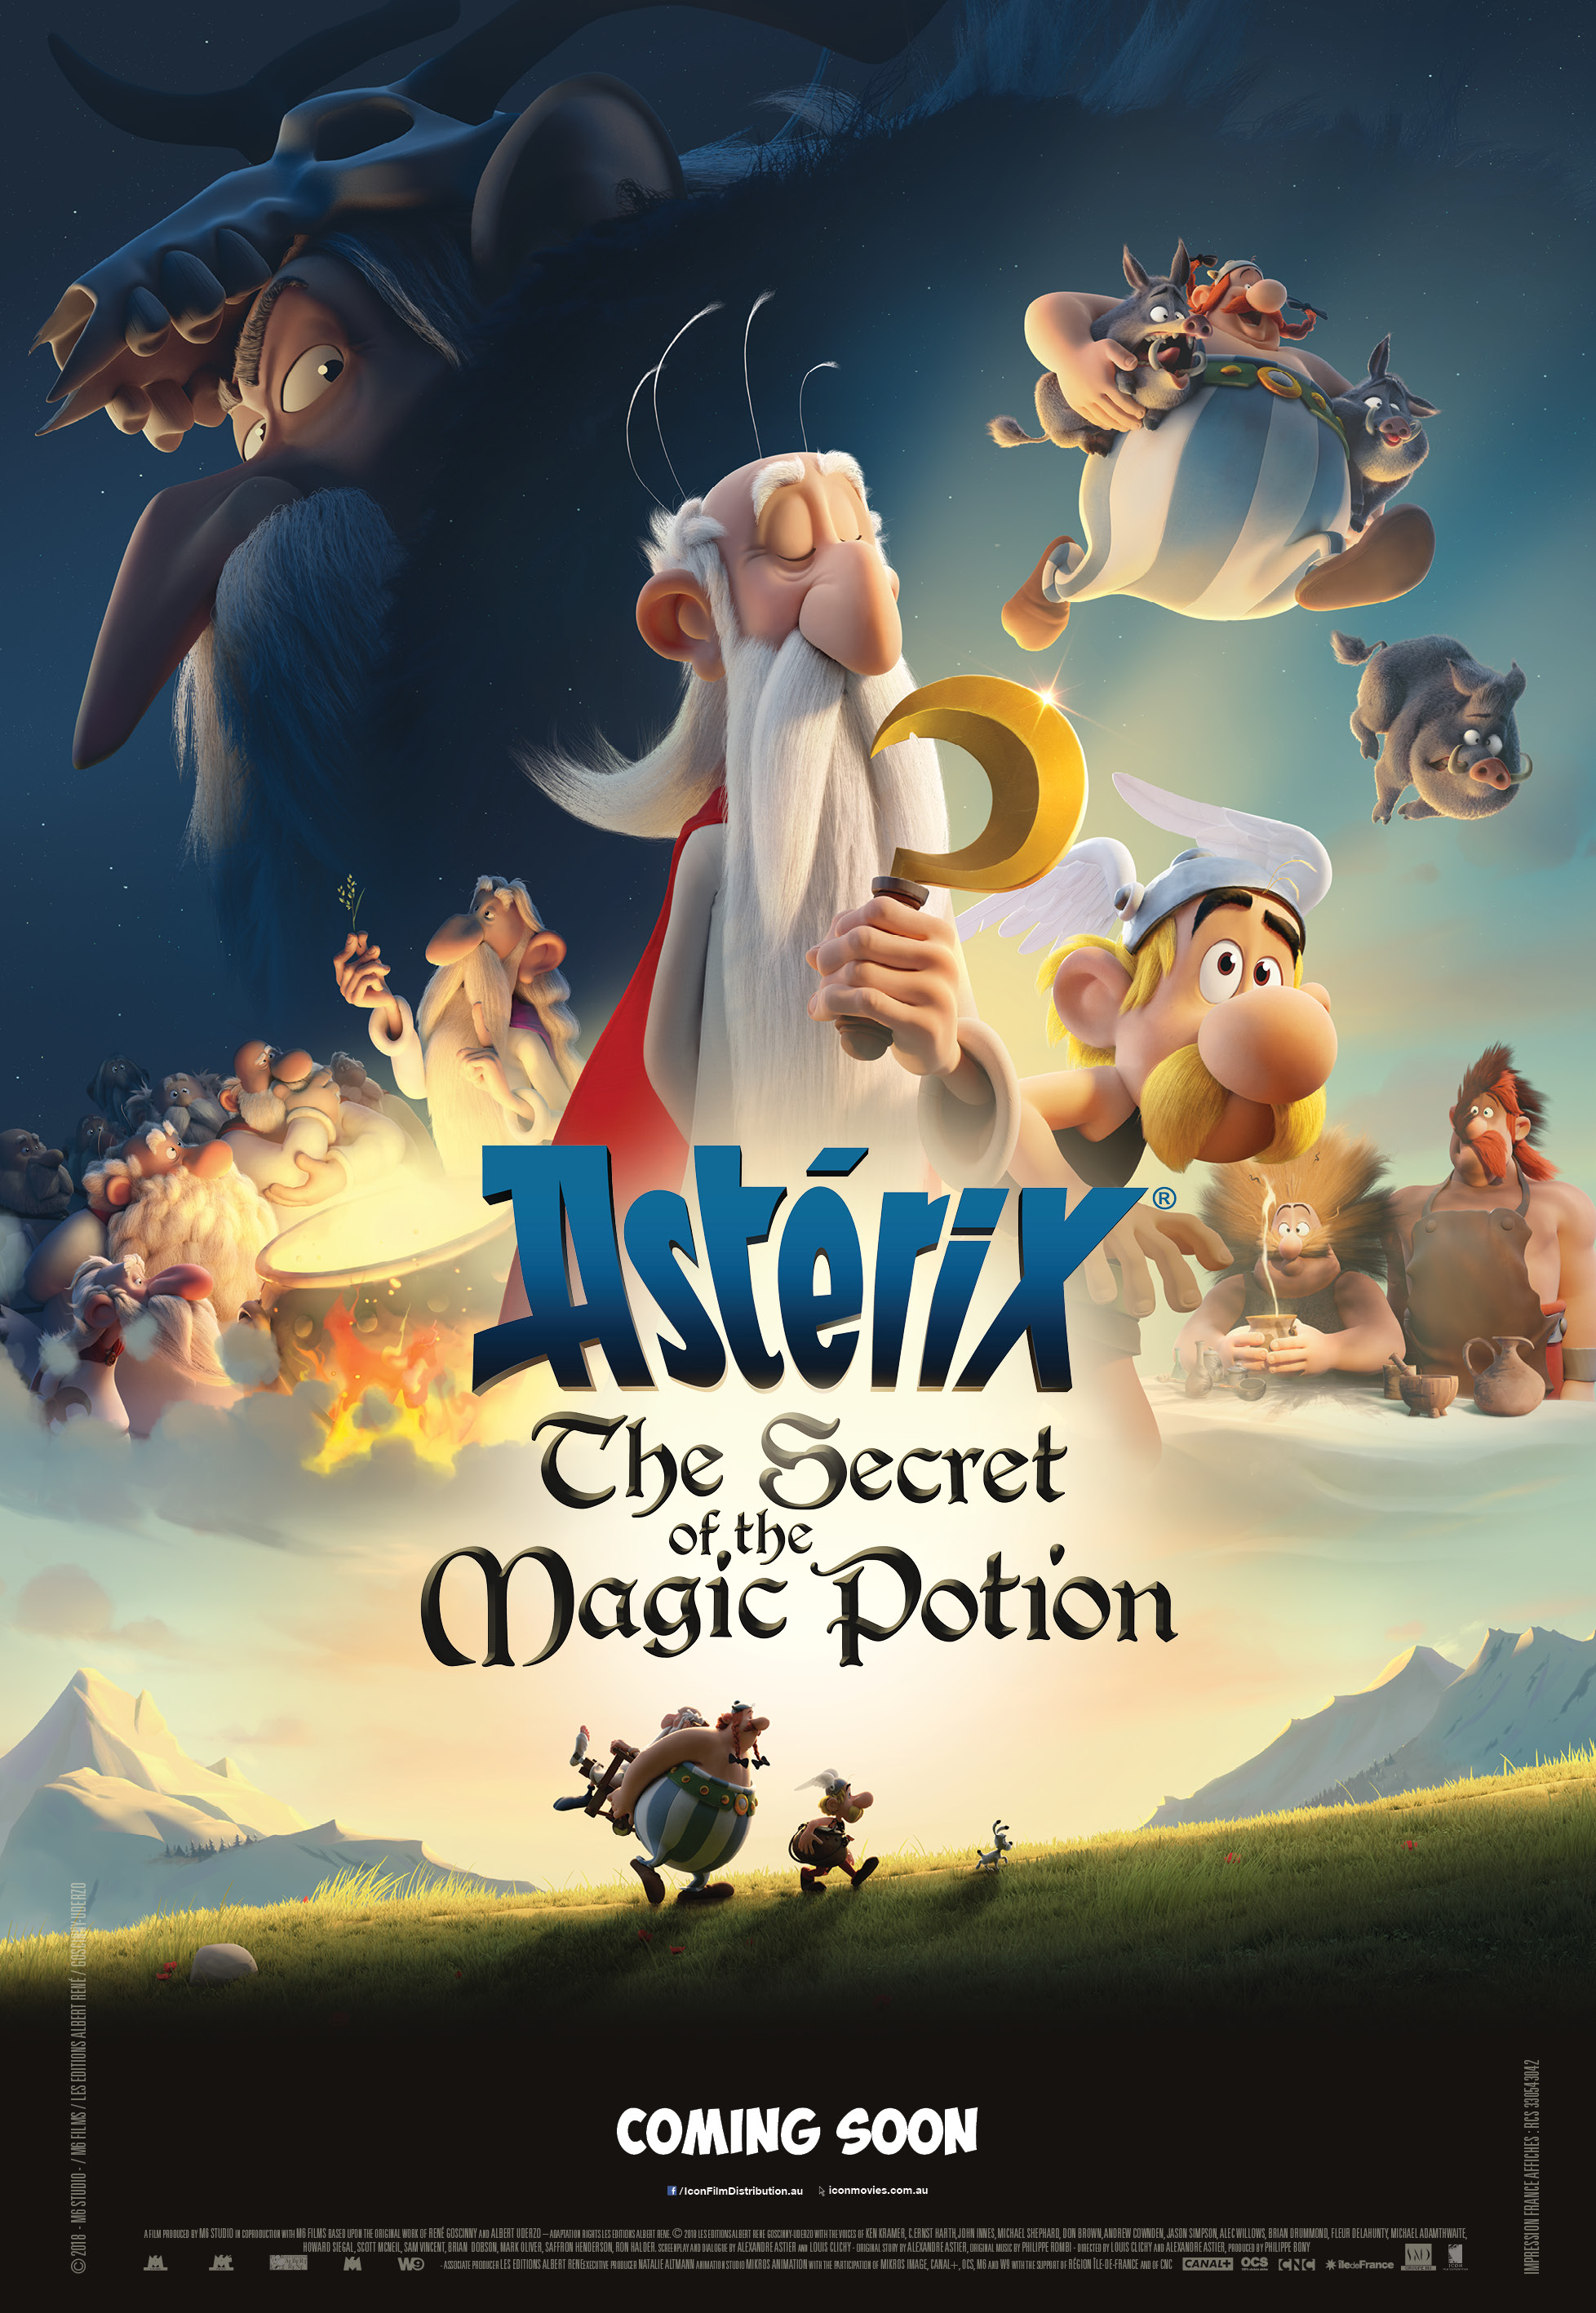 Asterix: The Secret of the Magic Potion